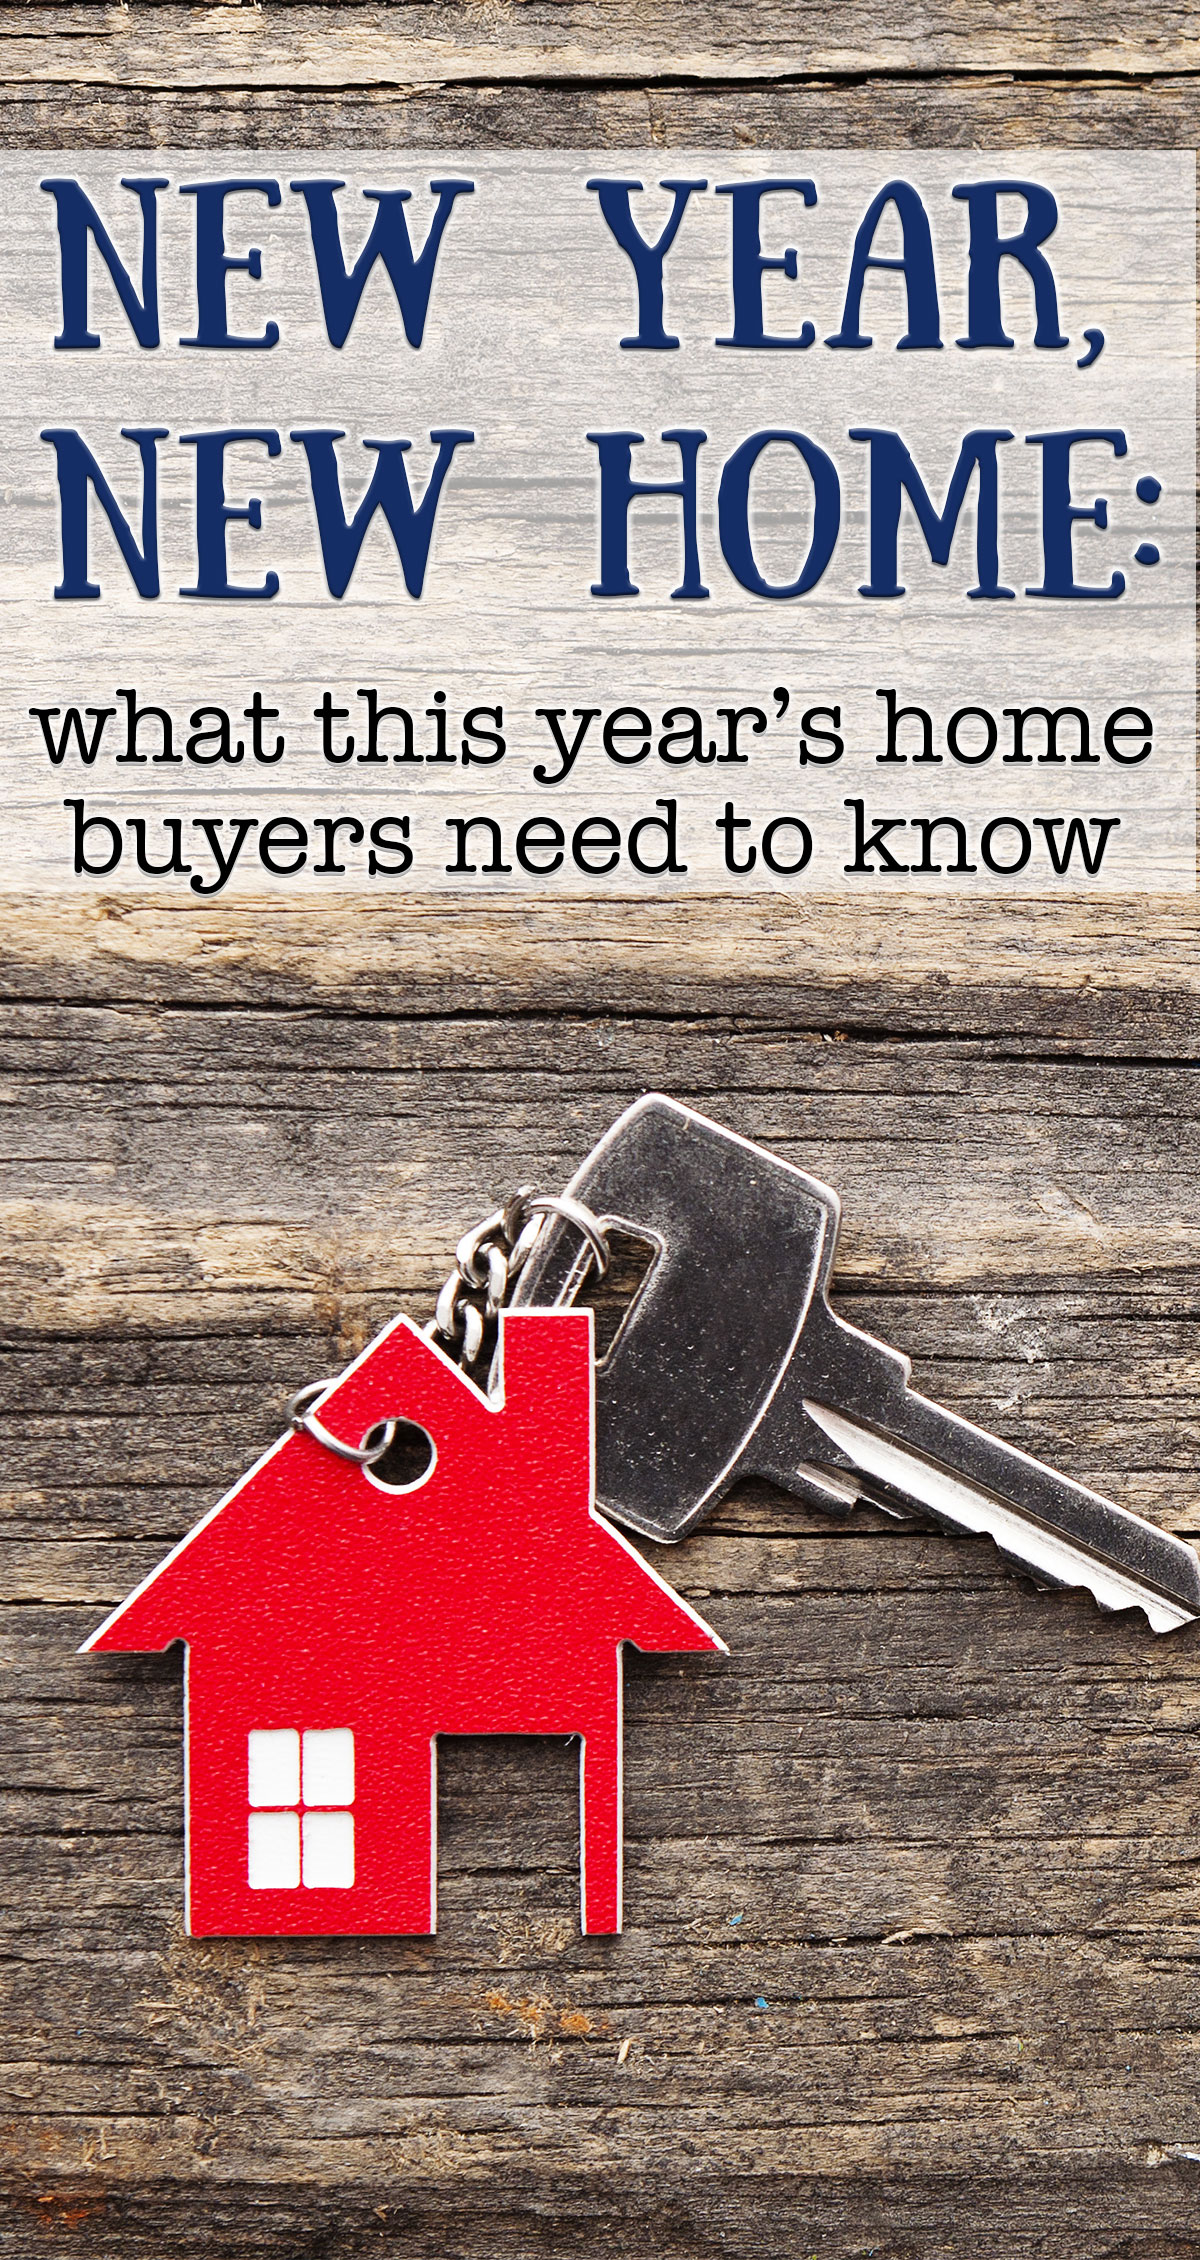 New Year, New Home: What This Year's Home Buyers Need to Know Pin